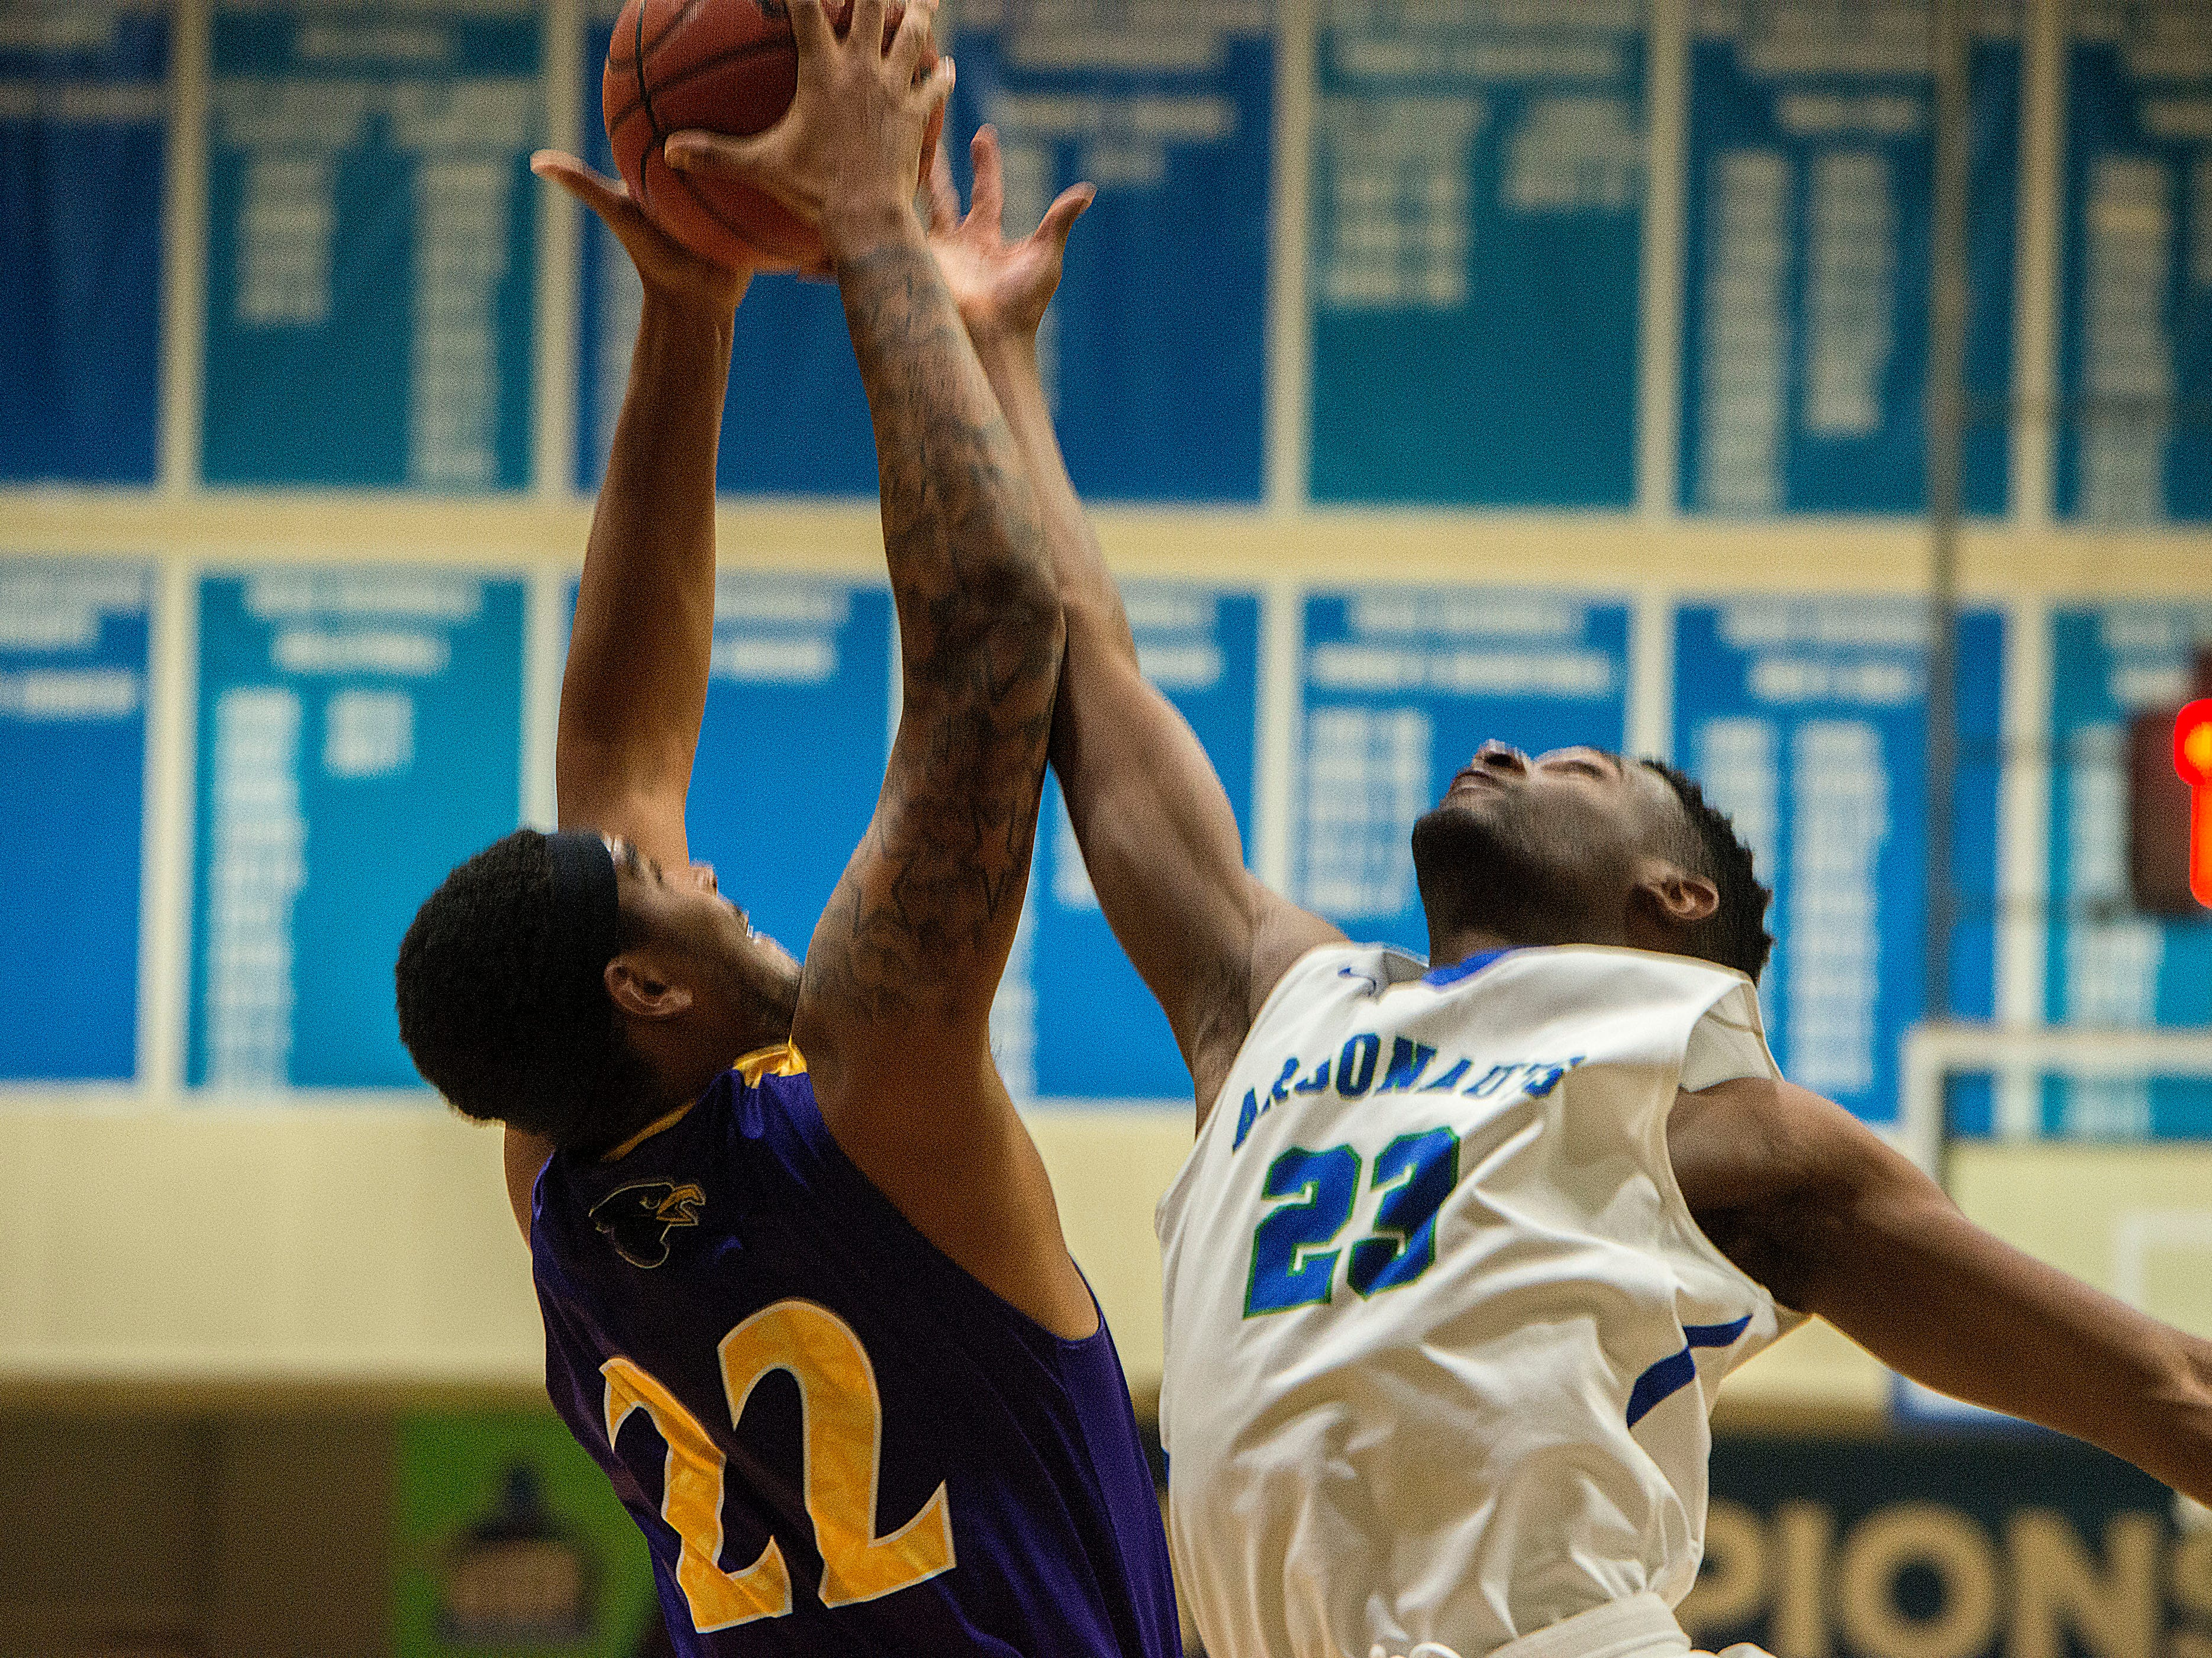 Montevallo's Jeremiah Curtis (22) and West Florida's Jarrett Henderson go up for the ball as they take on the Montevallo Falcons Saturday, January 5, 2019 at the UWF Field House